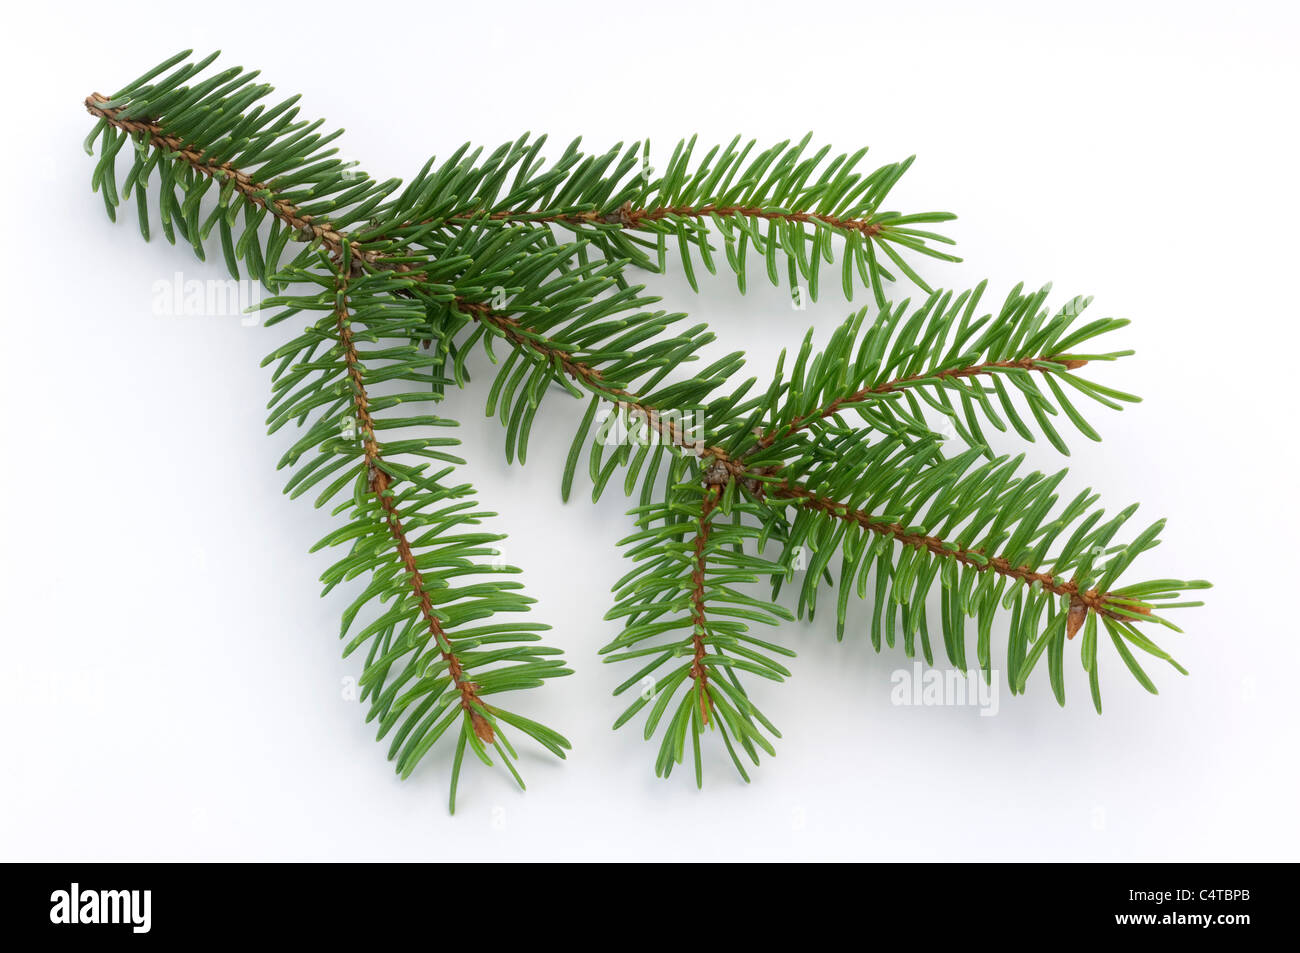 Blue Spruce (Picea pungens), twig. Studio picture against a white background. - Stock Image